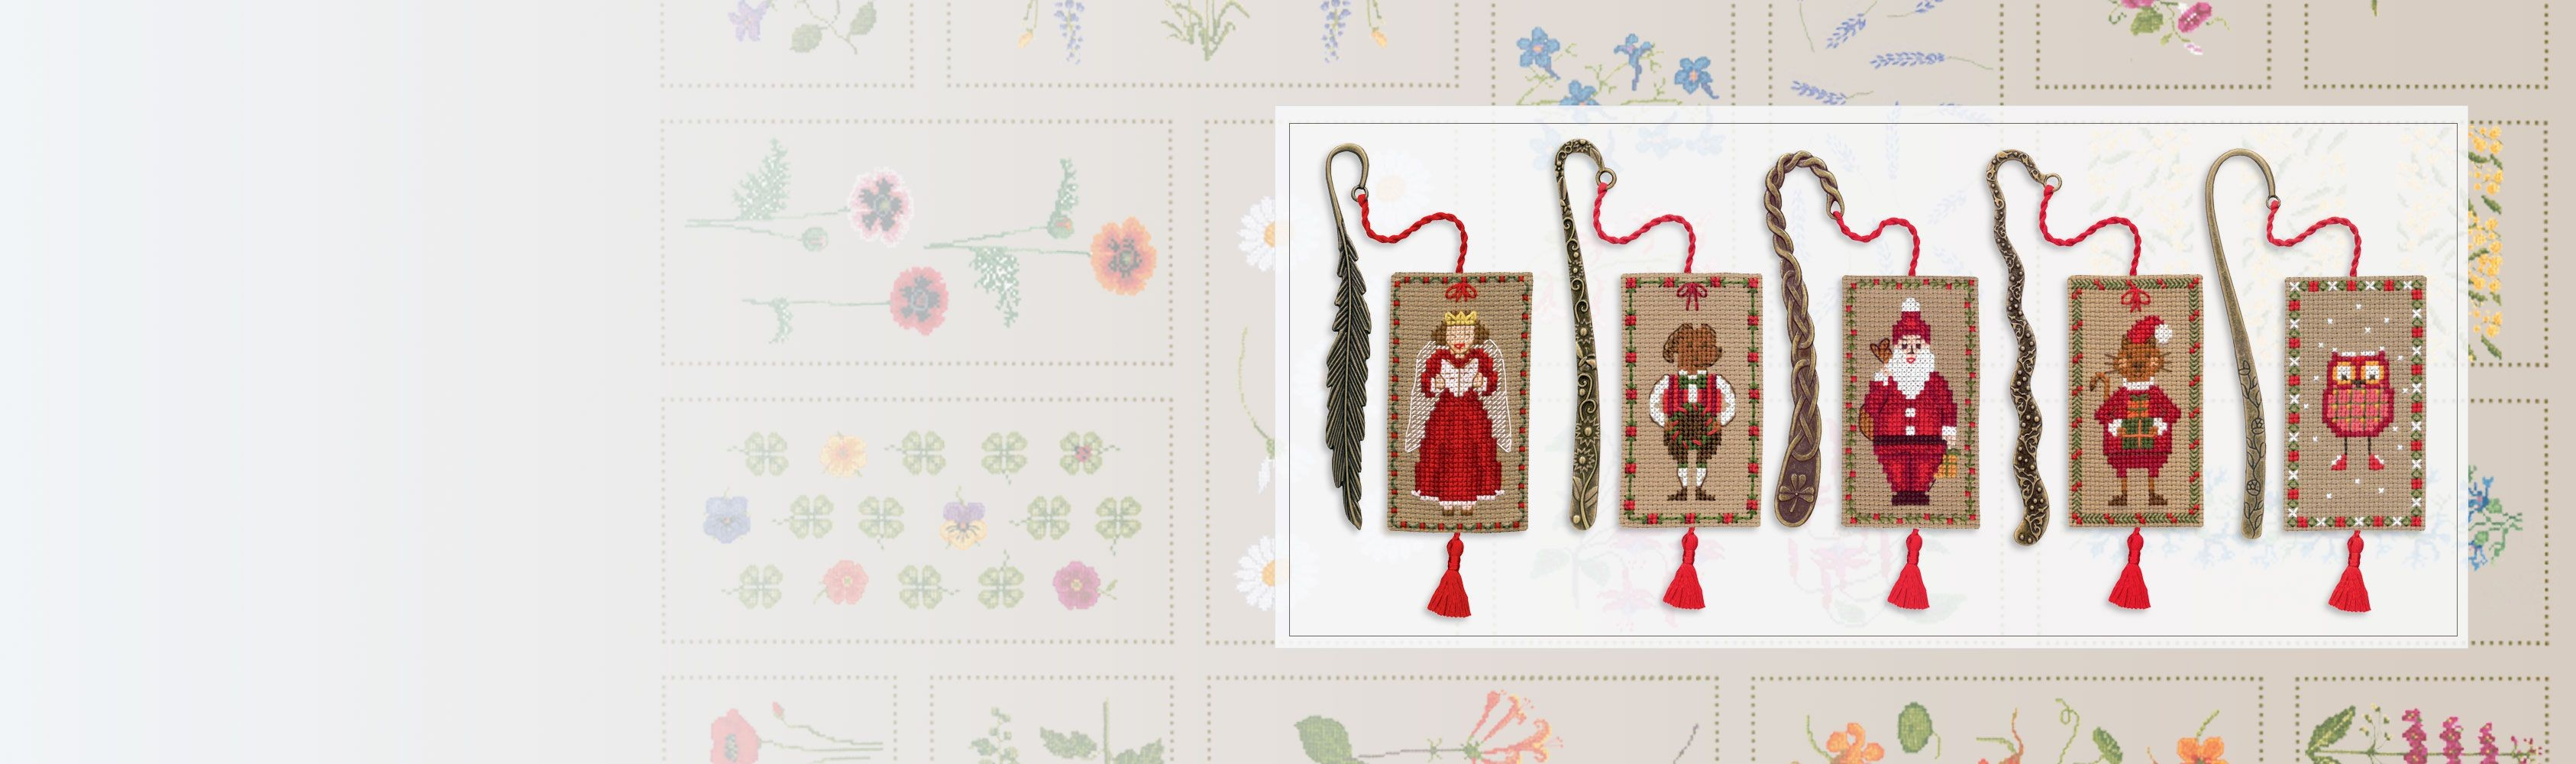 Counted cross stitch bookmarks for Christmas